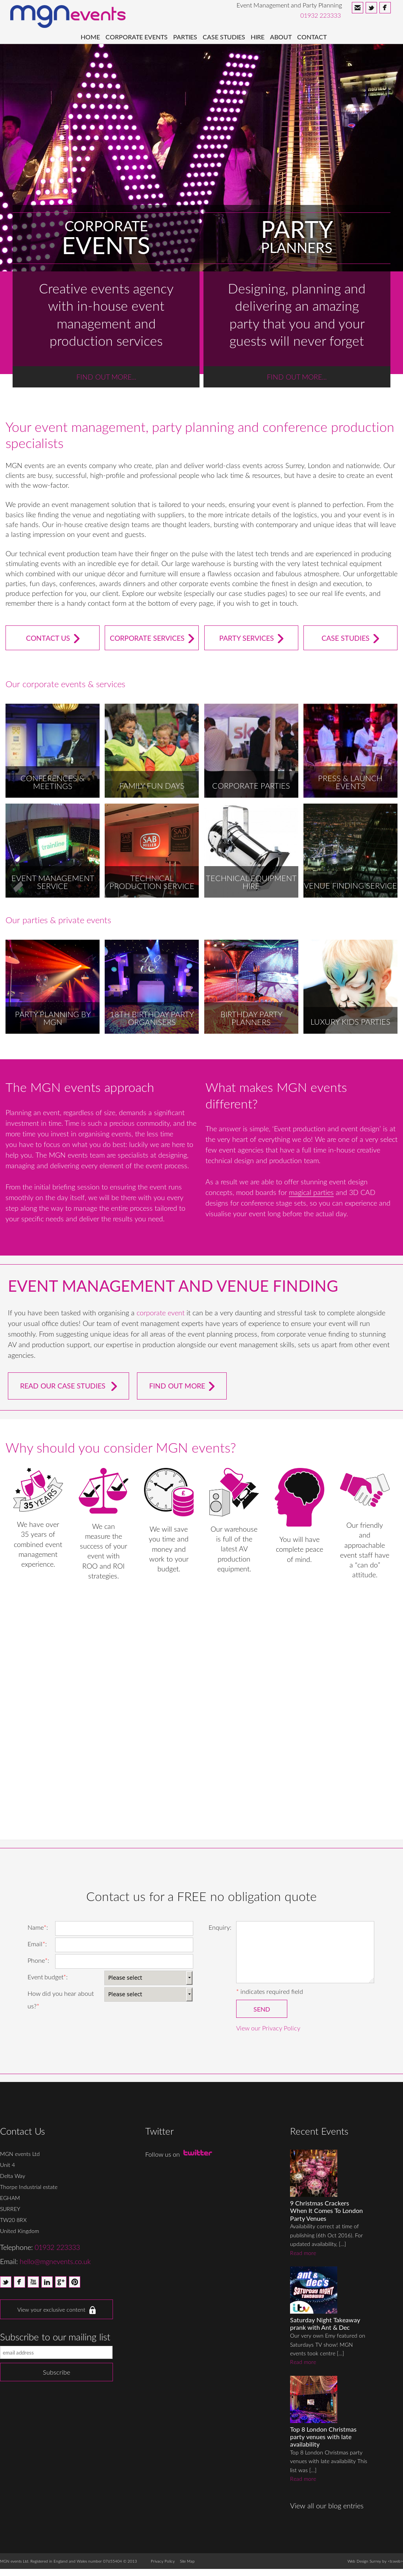 MGN events petitors Revenue and Employees Owler pany Profile